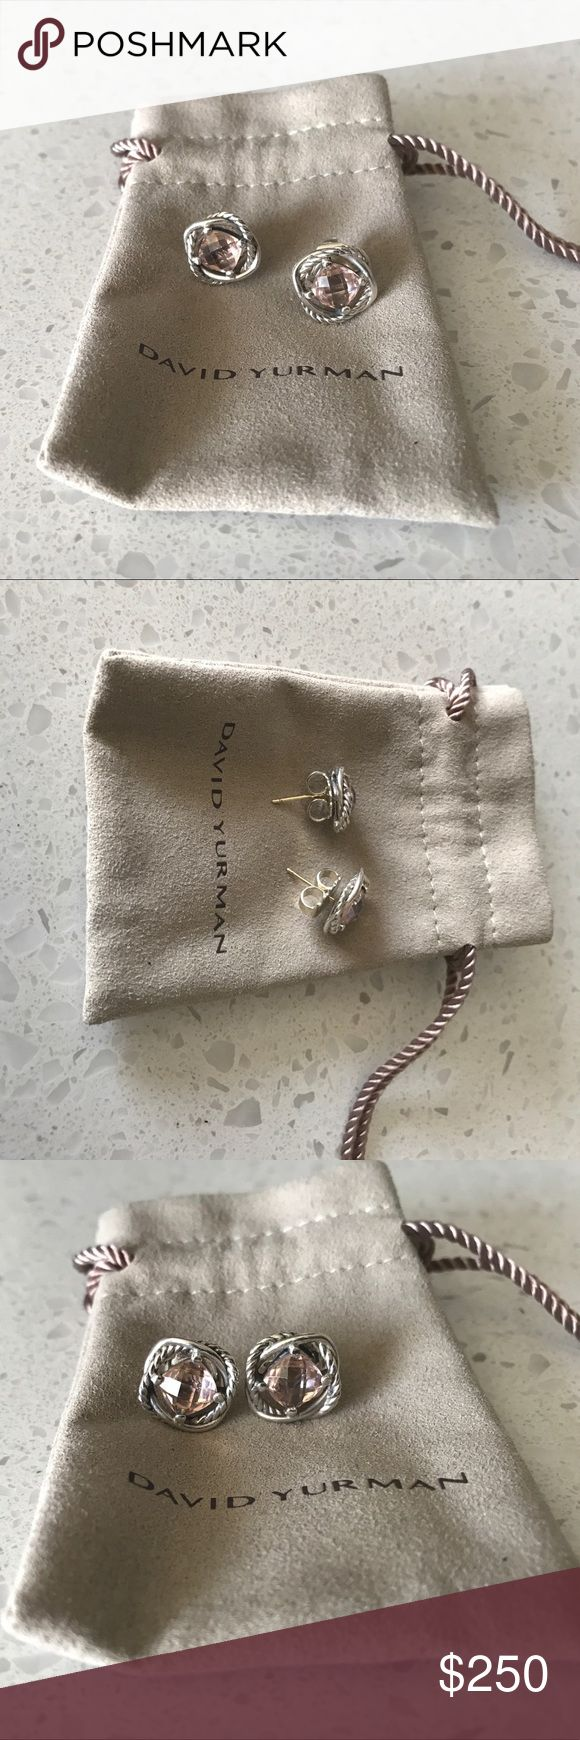 David Yurman Morganite Infinity Earrings These are really beautiful earrings, barely worn. I just don't wear them often and I don't wear much pink. Comes with original pouch. Firm on price. Sales only, please! David Yurman Jewelry Earrings